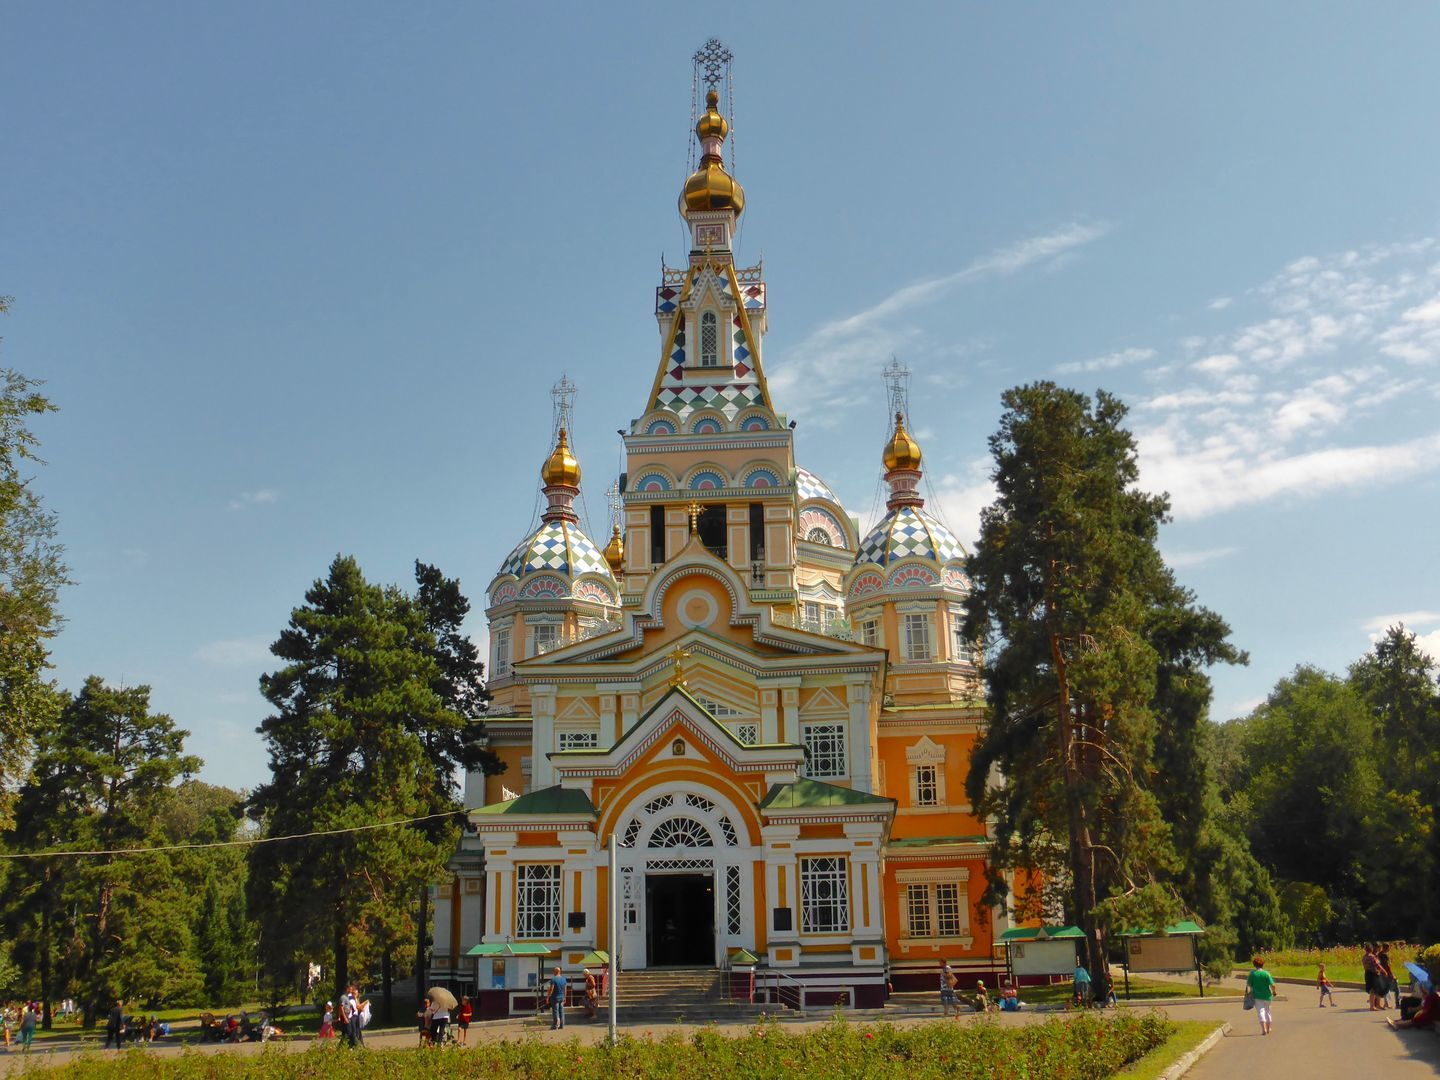 Zenkov wooden cathedral in Almaty with colorful full facade, city travel in Kazakhstan